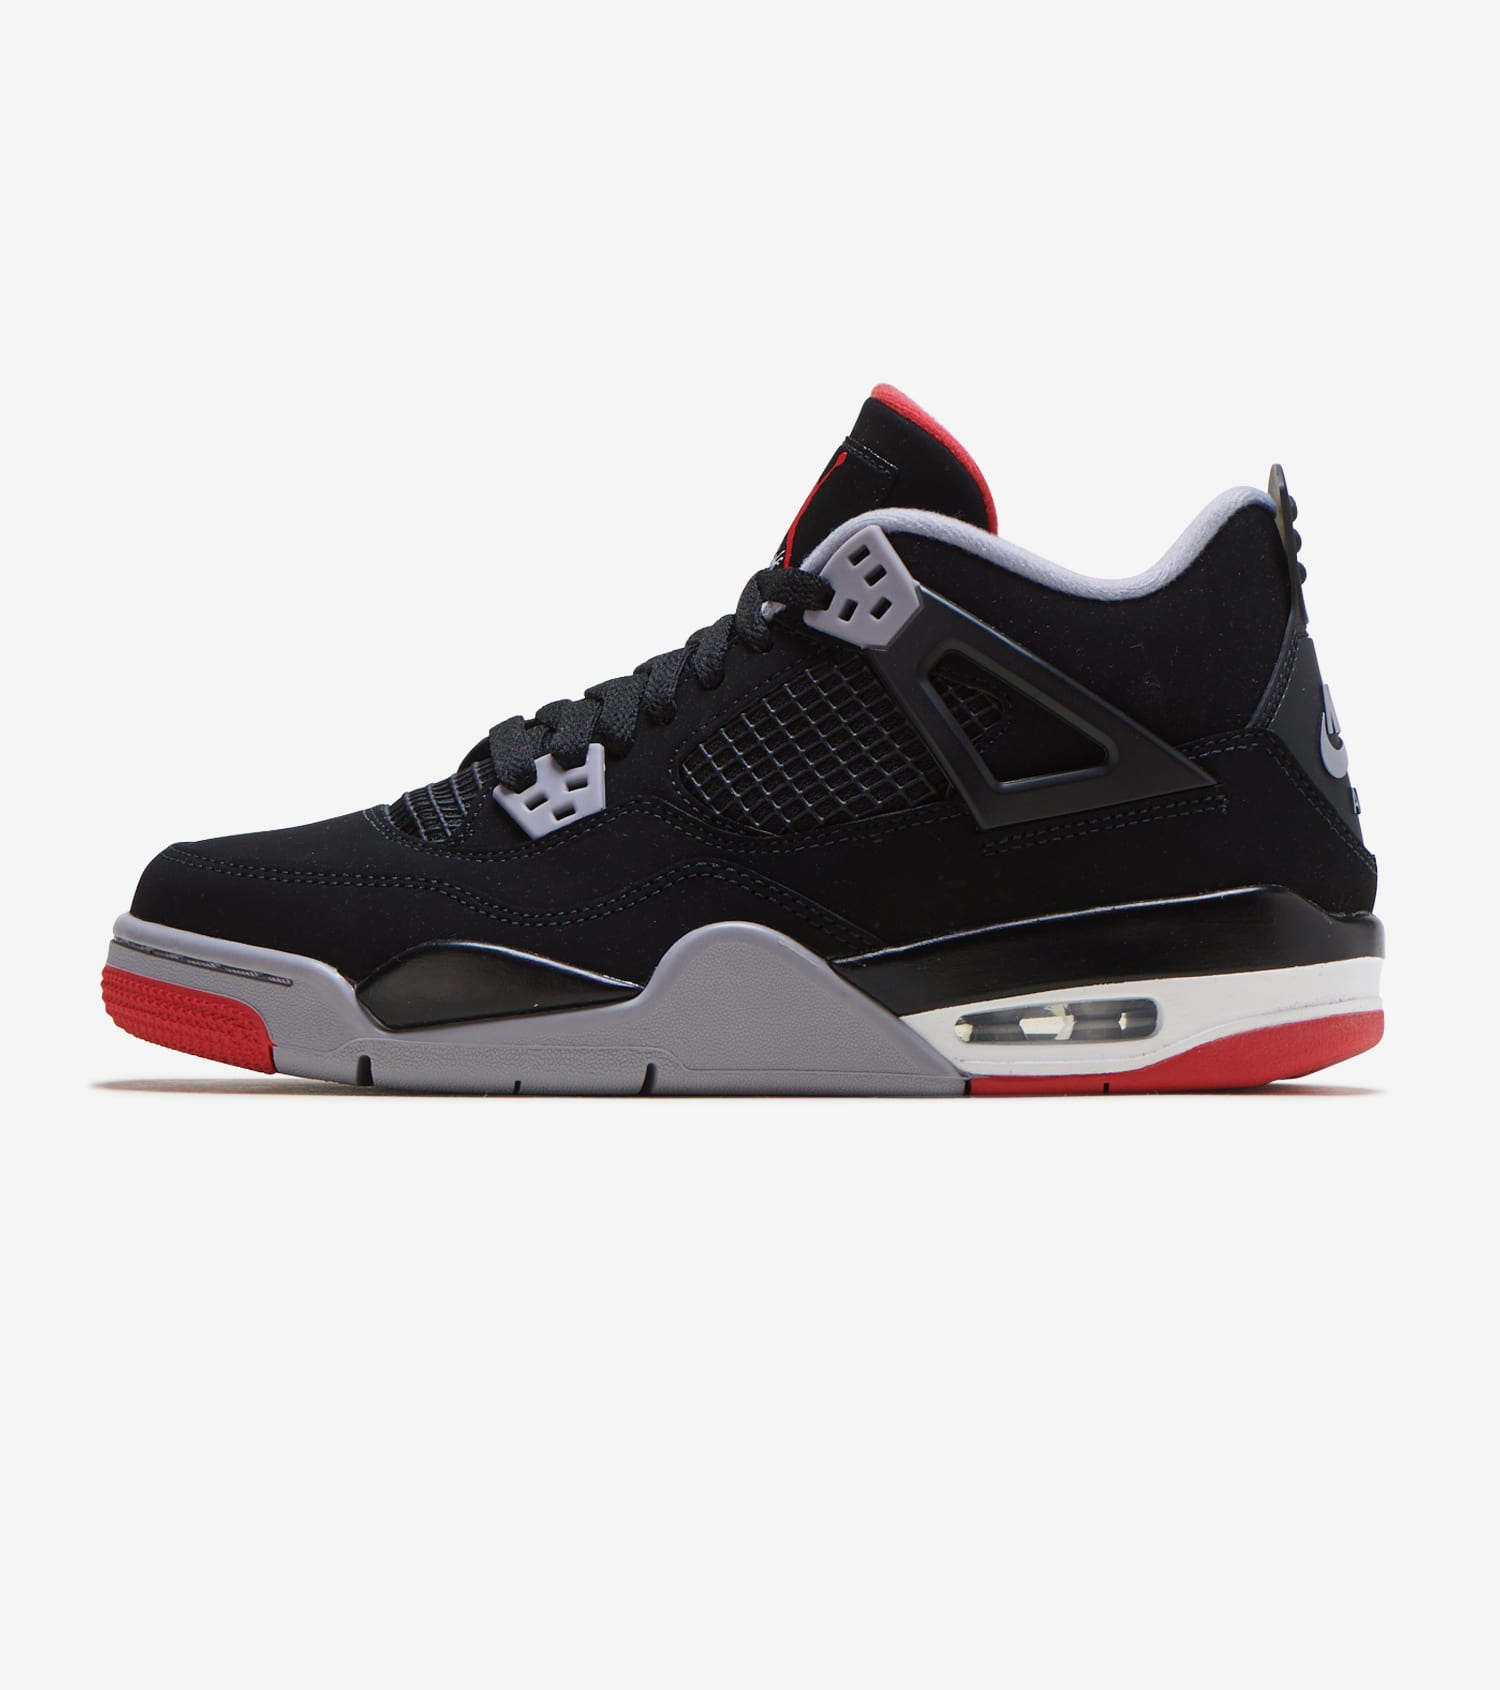 best sneakers 9107a 4a9bf Retro 4